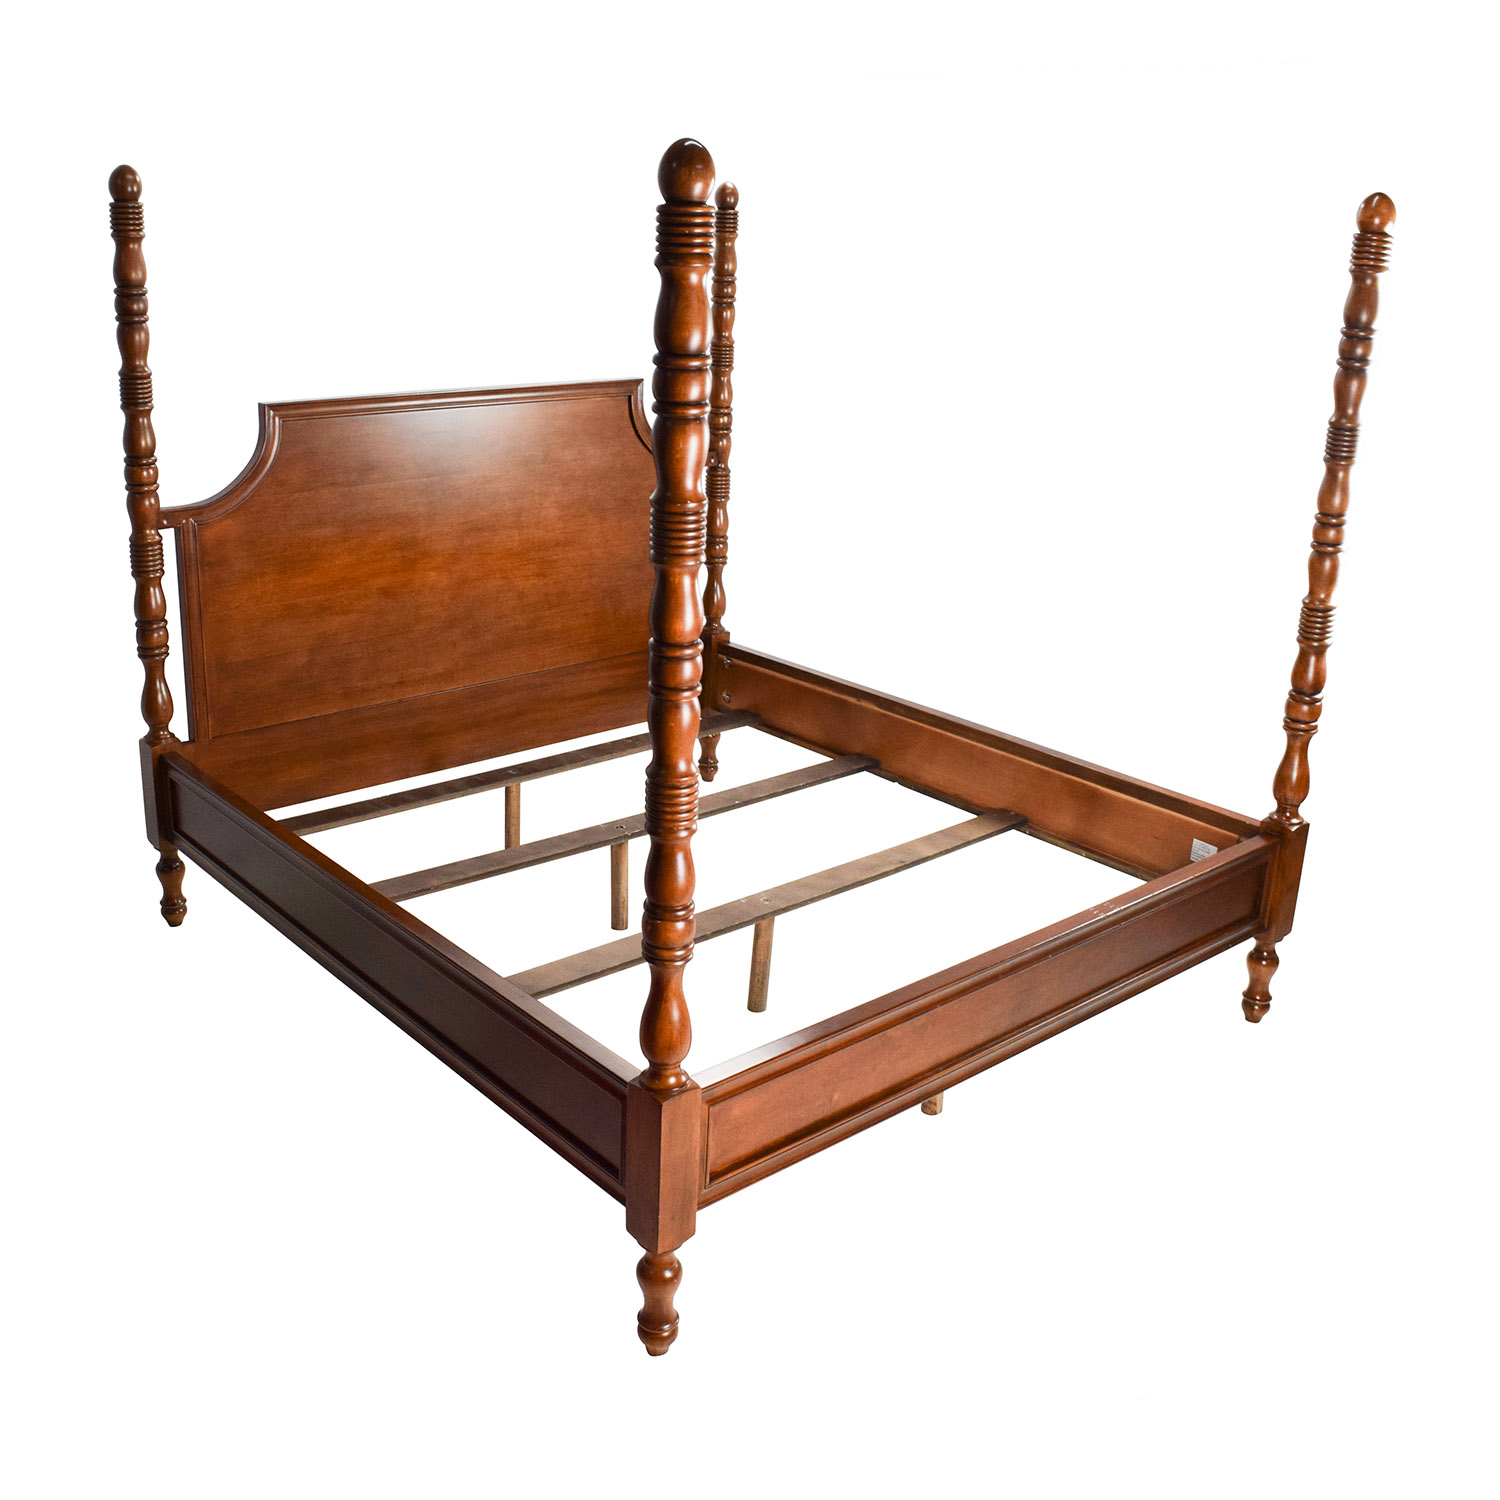 77 off thomasville furniture thomasville king size for Second hand bunk beds